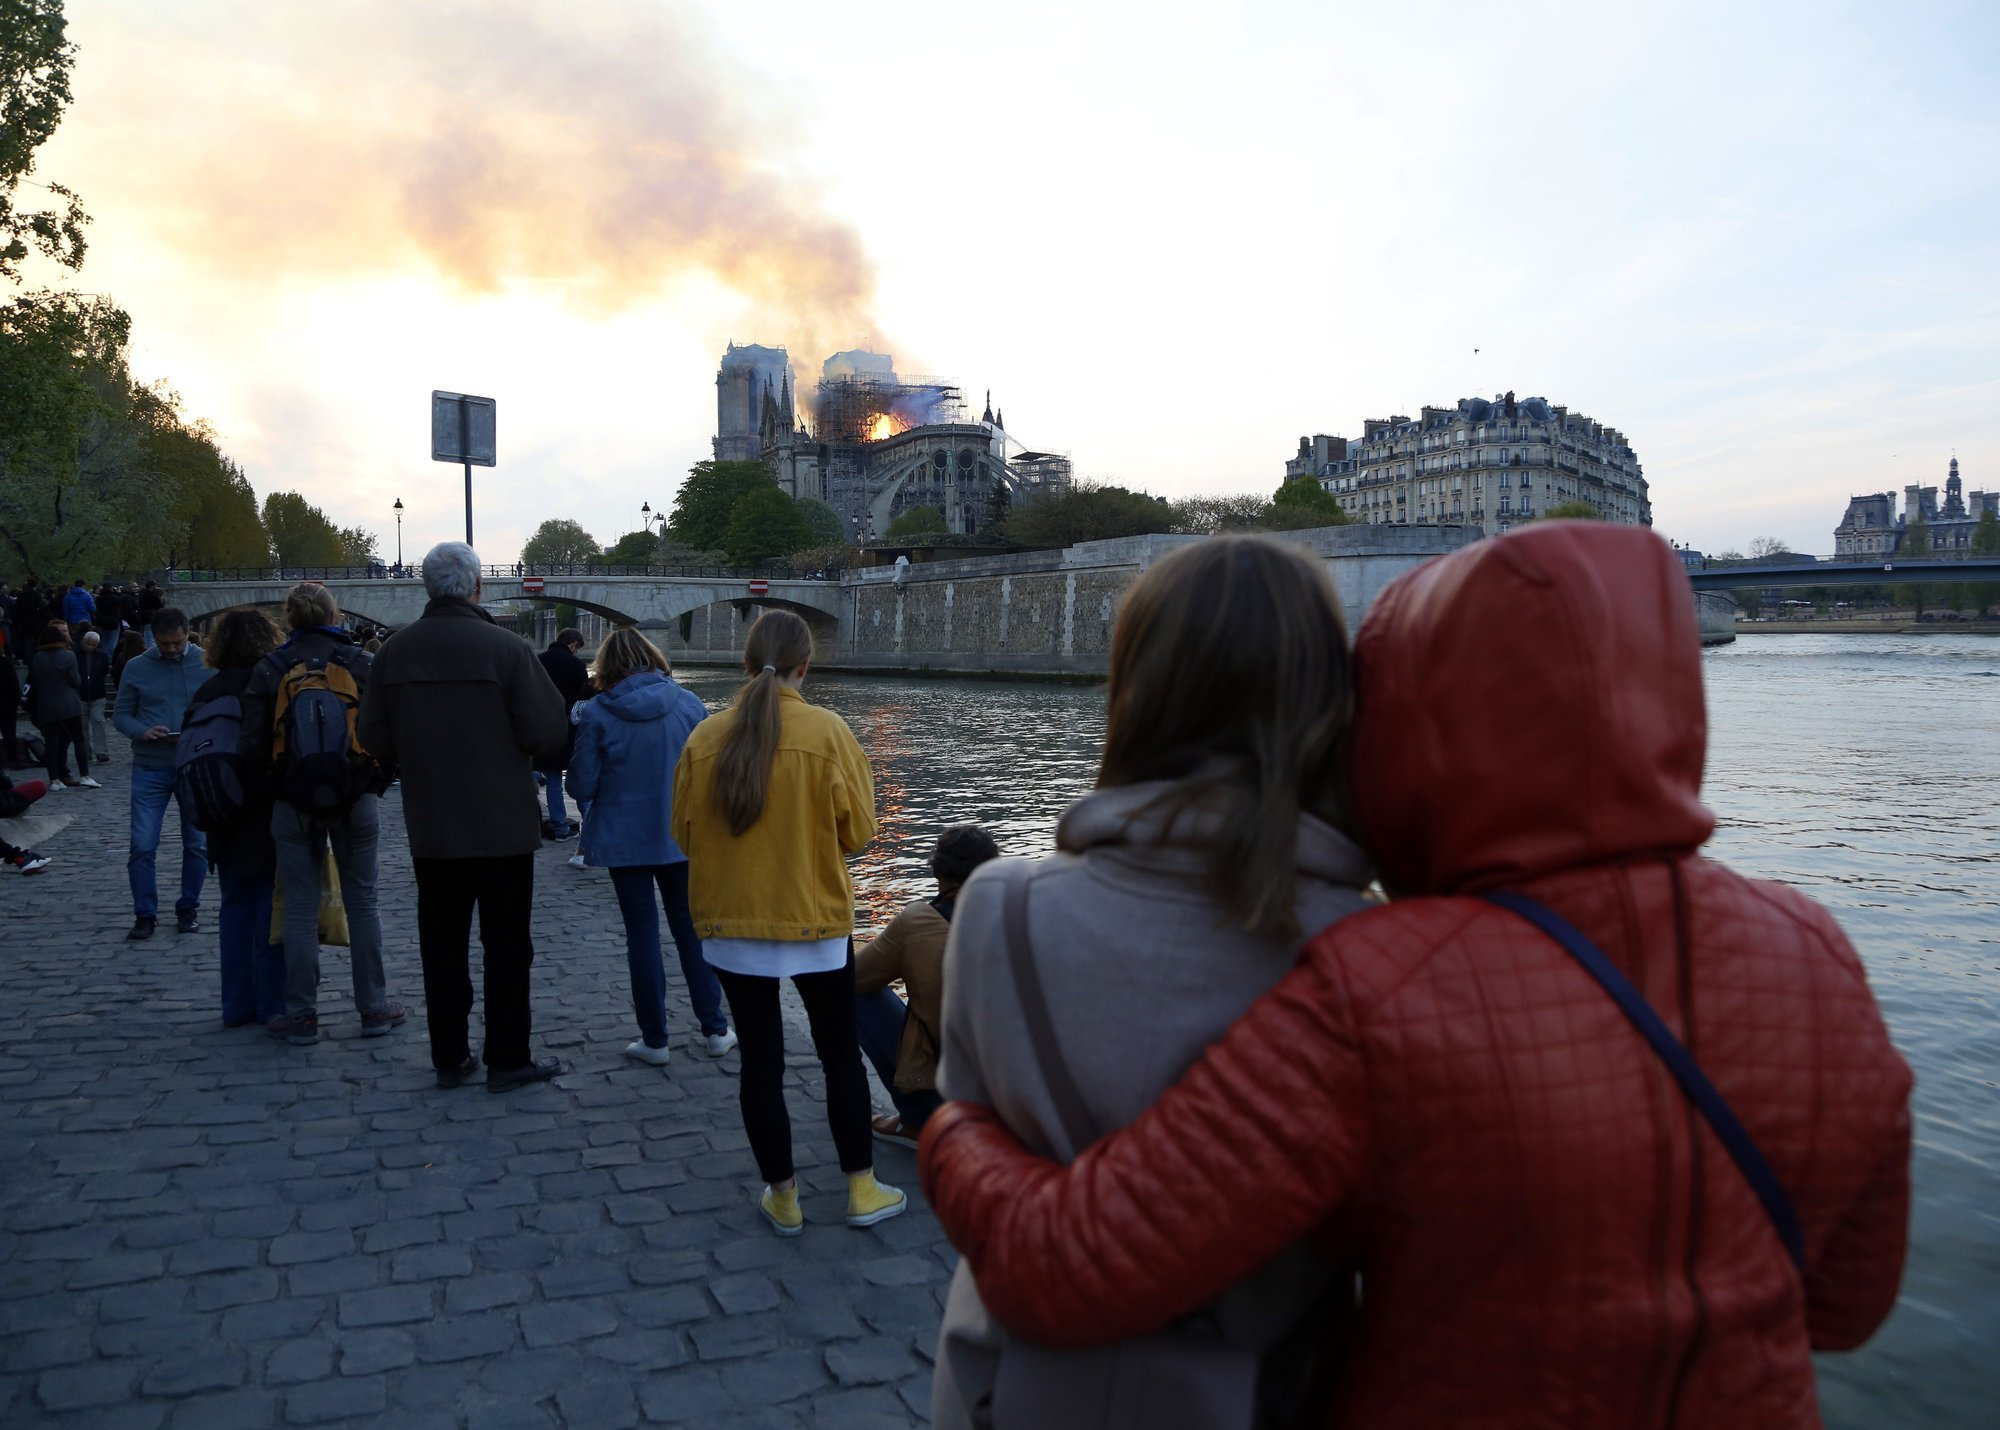 Notre-Dame cathedral is seen burning in Paris as tourists and Parisians look on aghast from the streets below. — AP